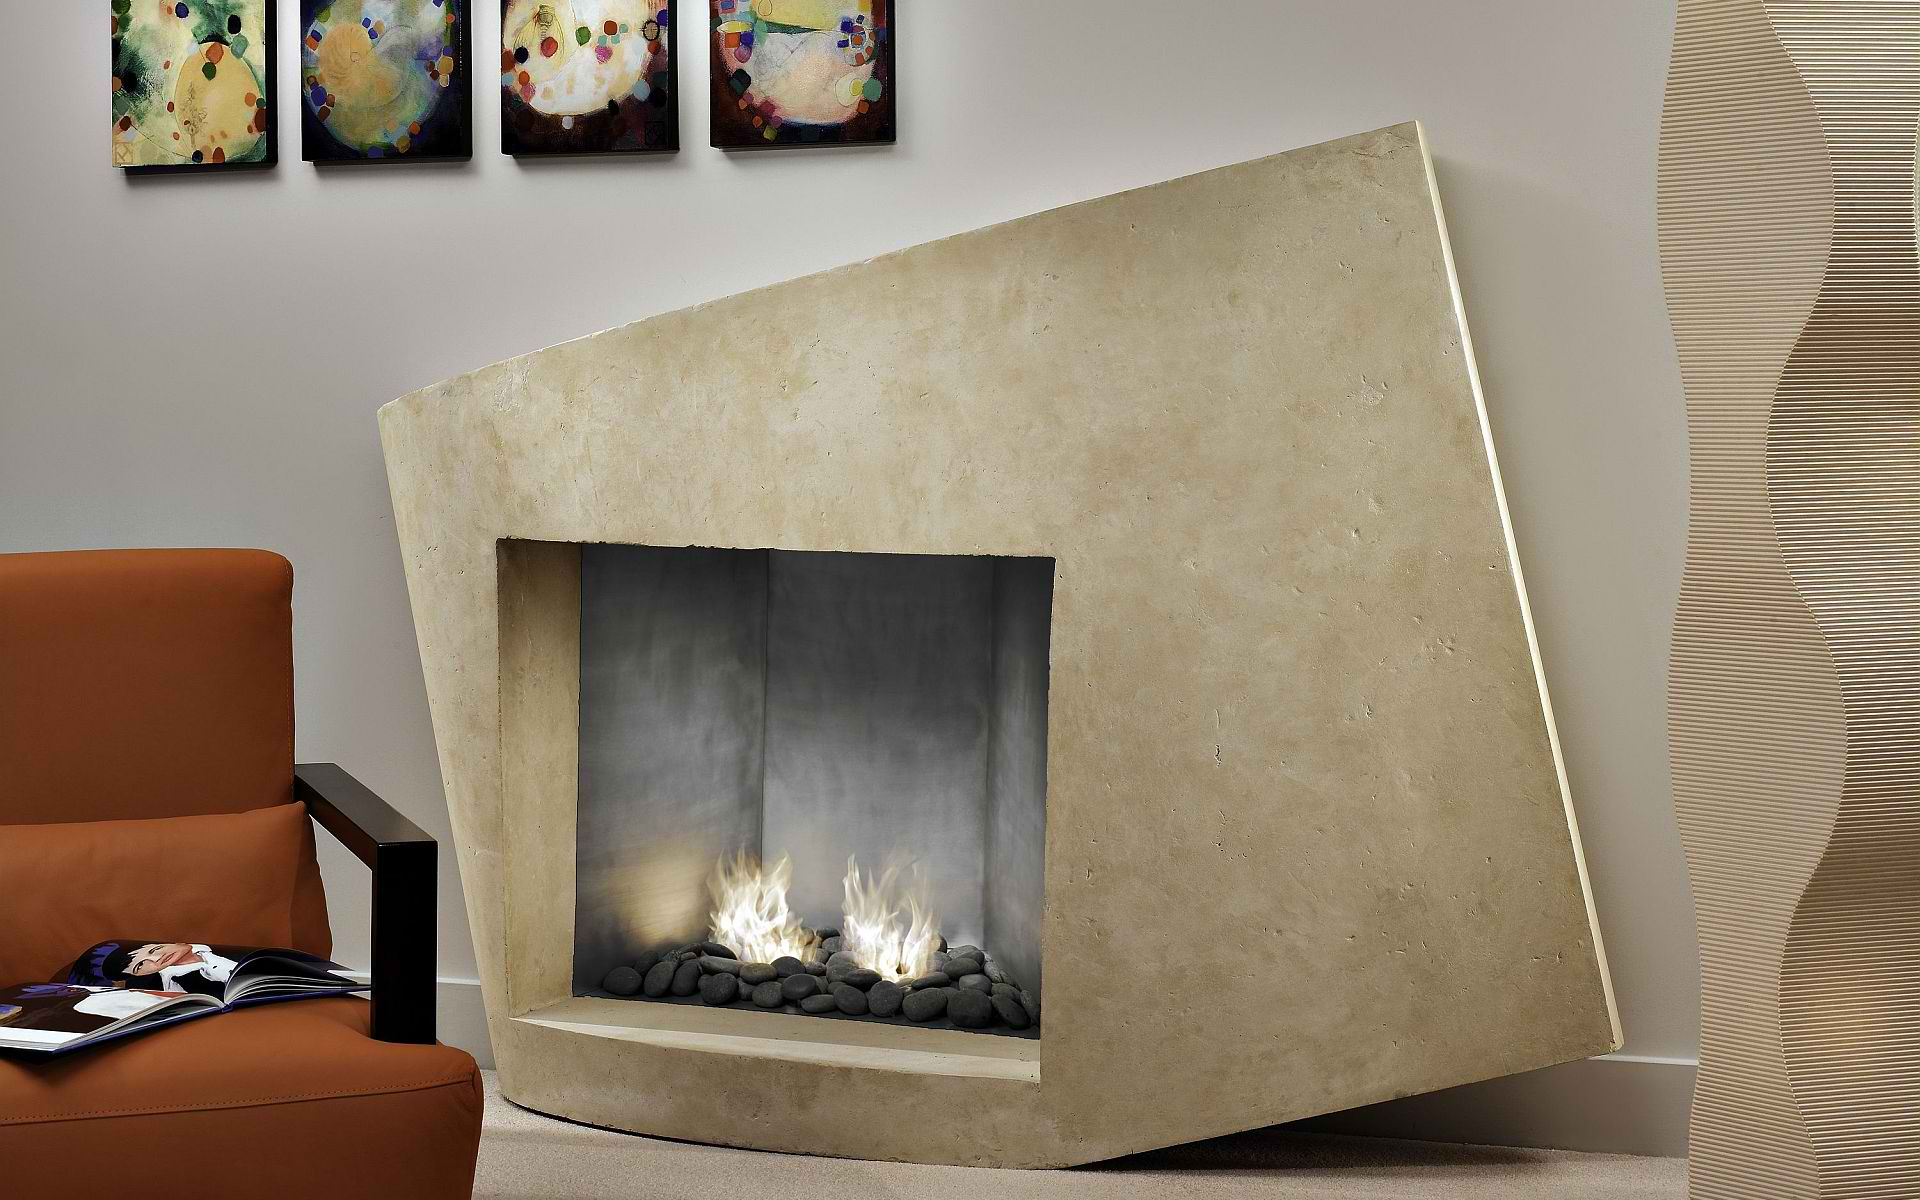 Modern Fireplace Mantel kits with pictures above for modern decor ideas